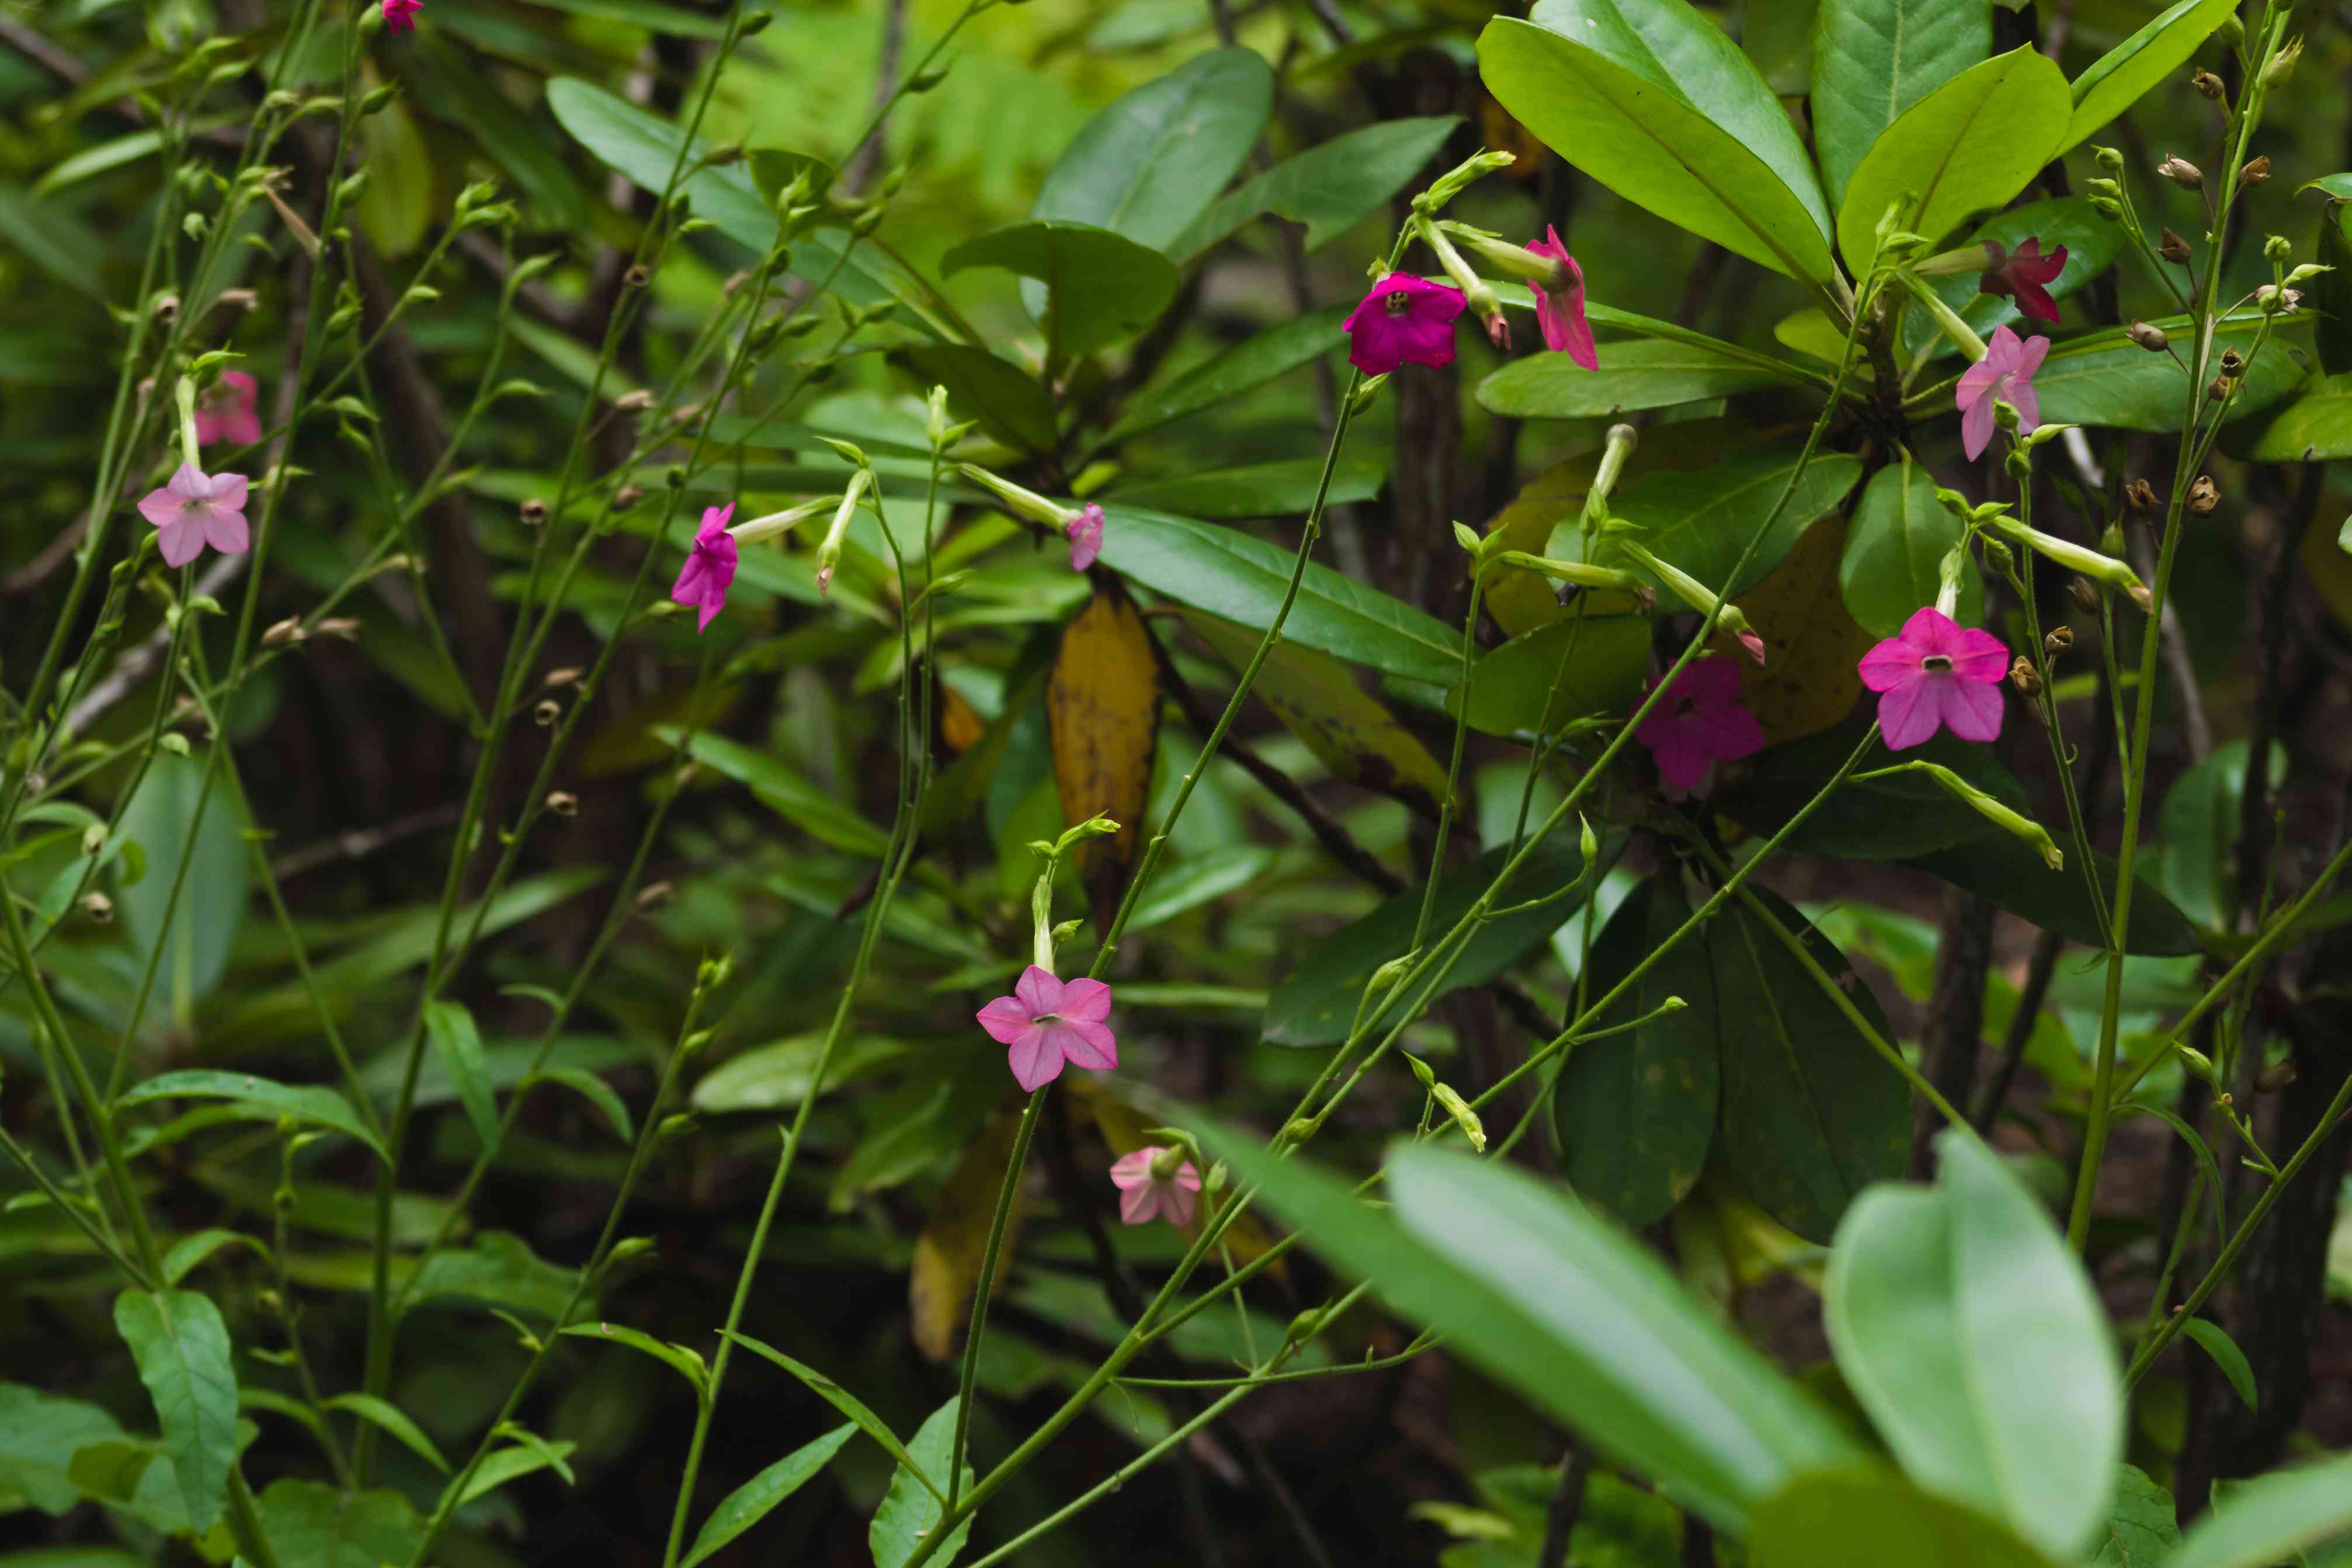 Flowering tobacco plant with flowers and foliage